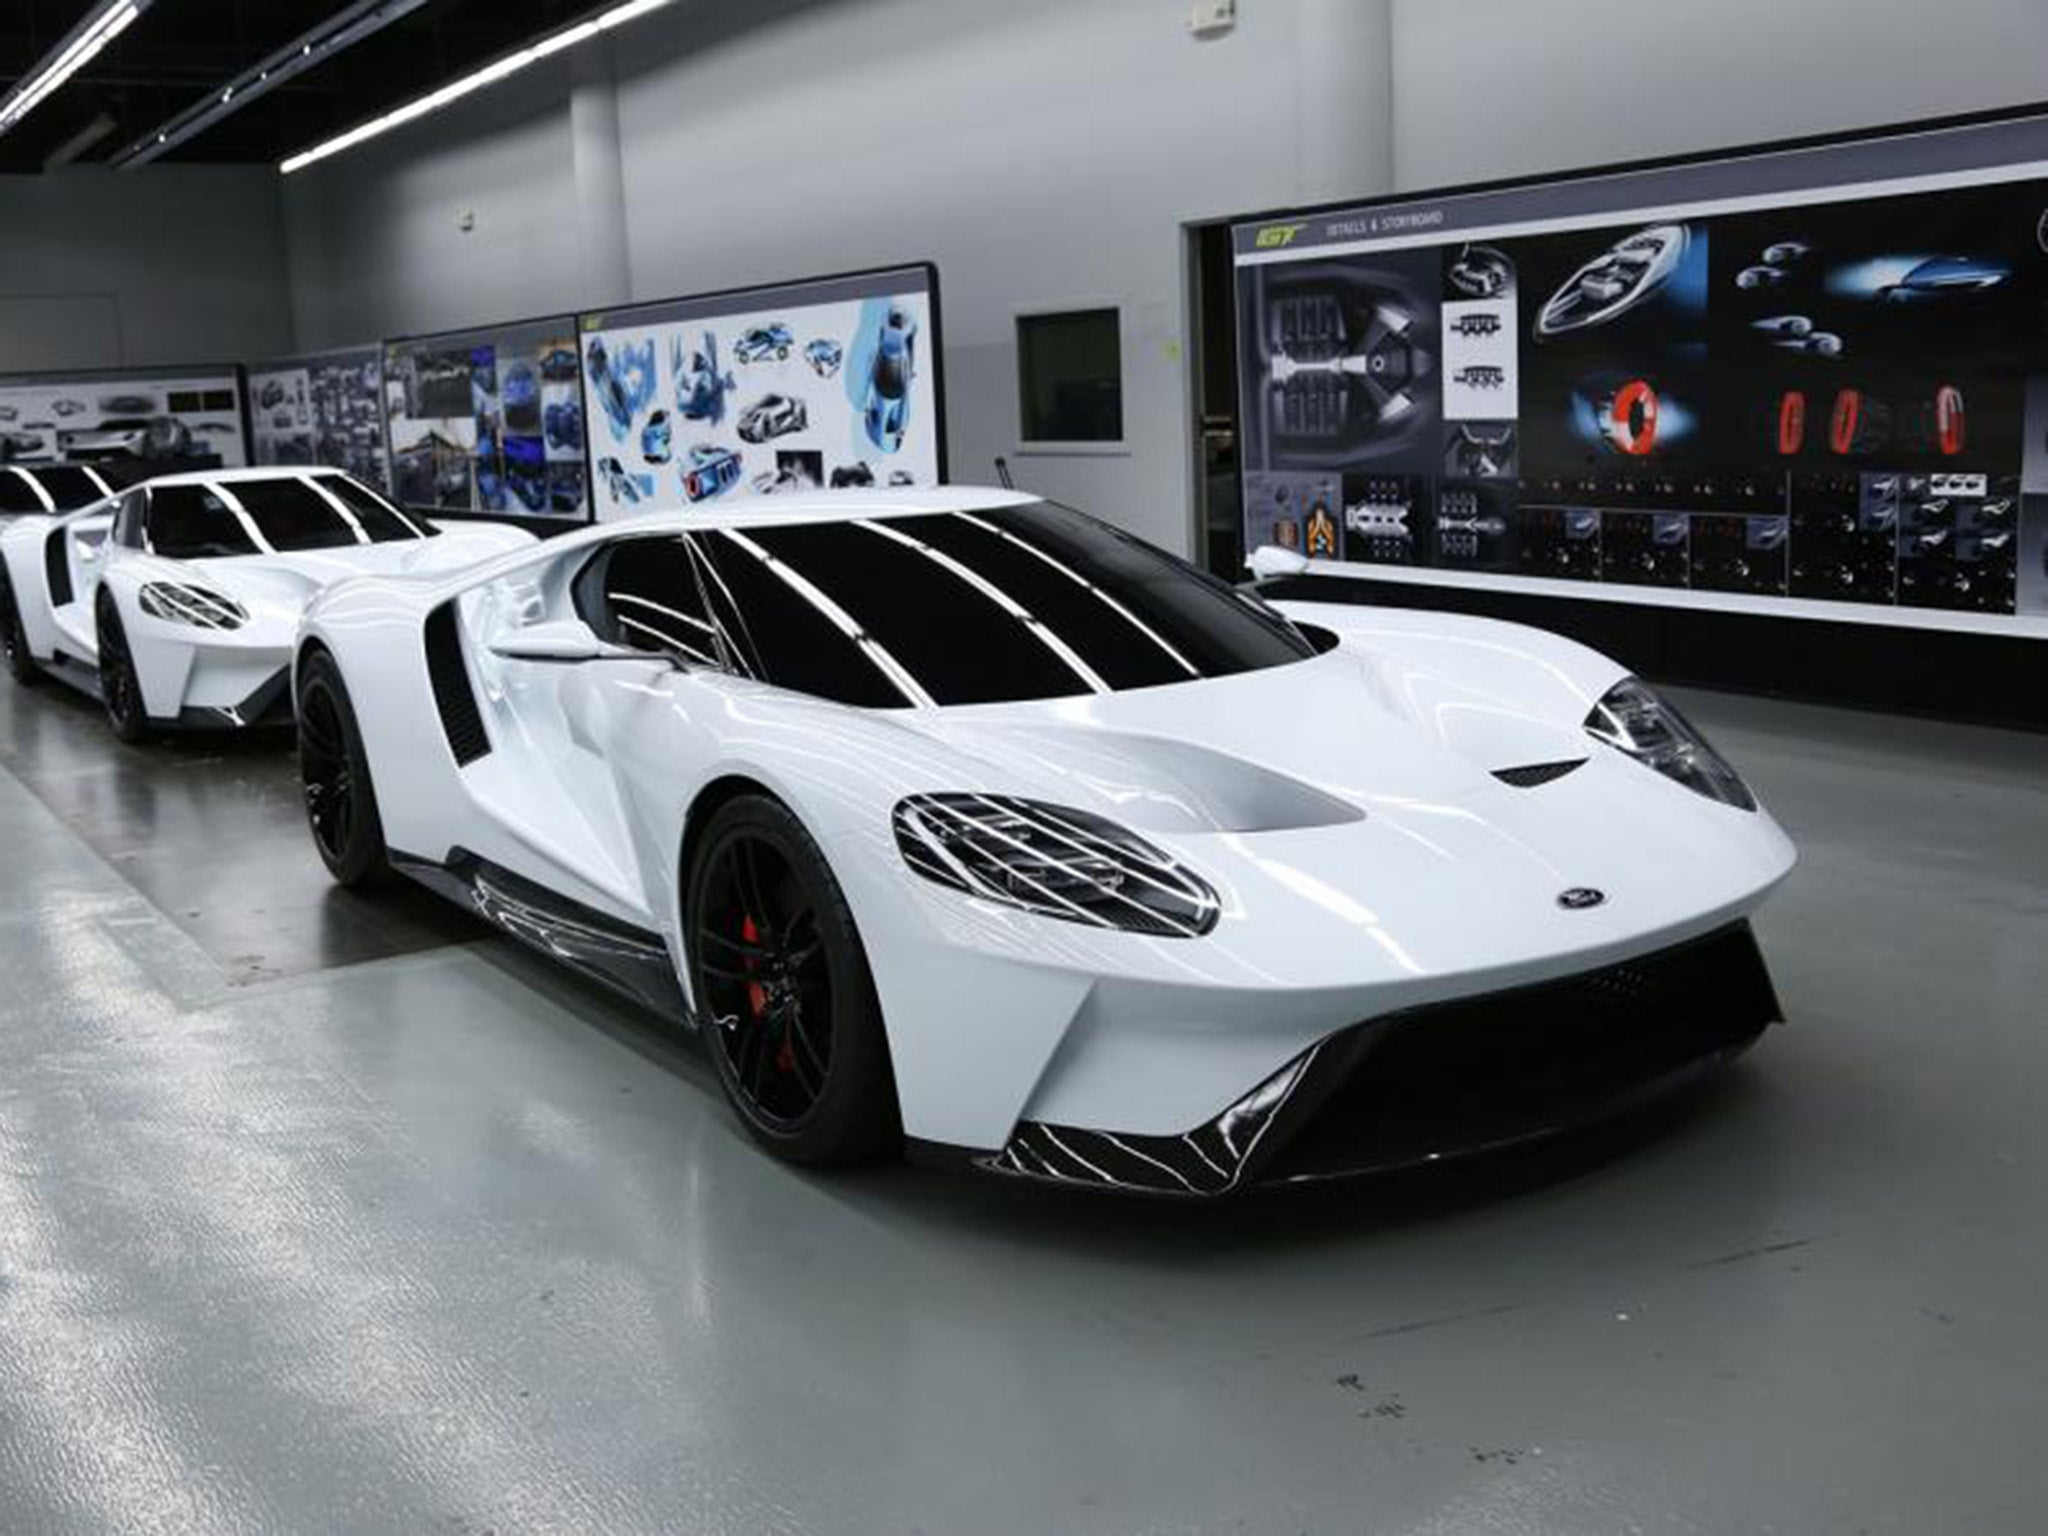 Ford GT secrets revealed: Discovering the genesis of new Ford Le Mans car | The Independentindependent_brand_ident_LOGOUntitled